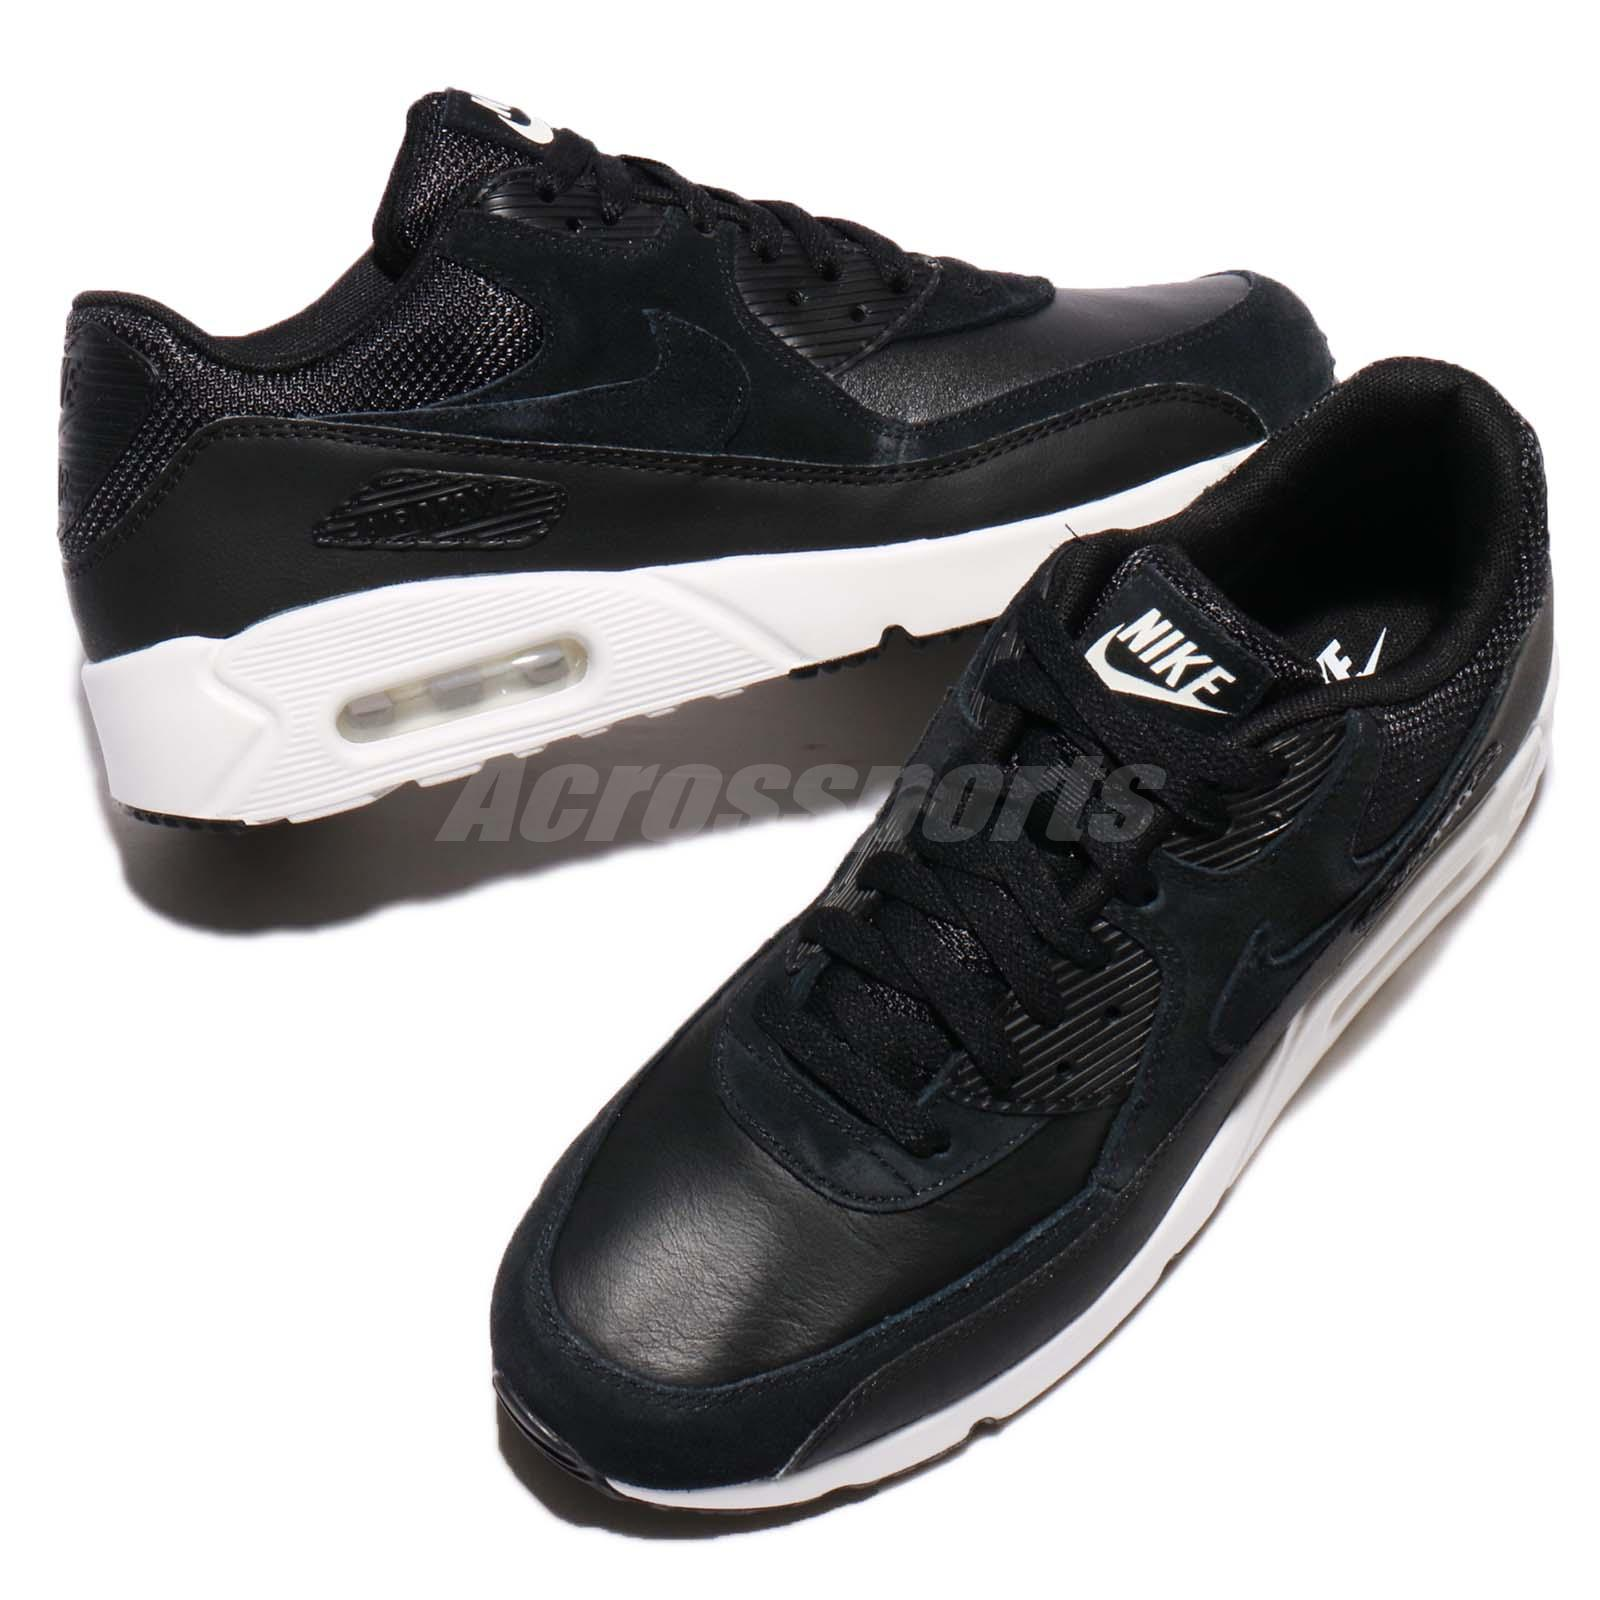 wholesale dealer 6dfc8 96353 Shoes Nike Air Max 90 Ultra 2.0 LTR Leather Black Summit White Men Running  924447-001 ...